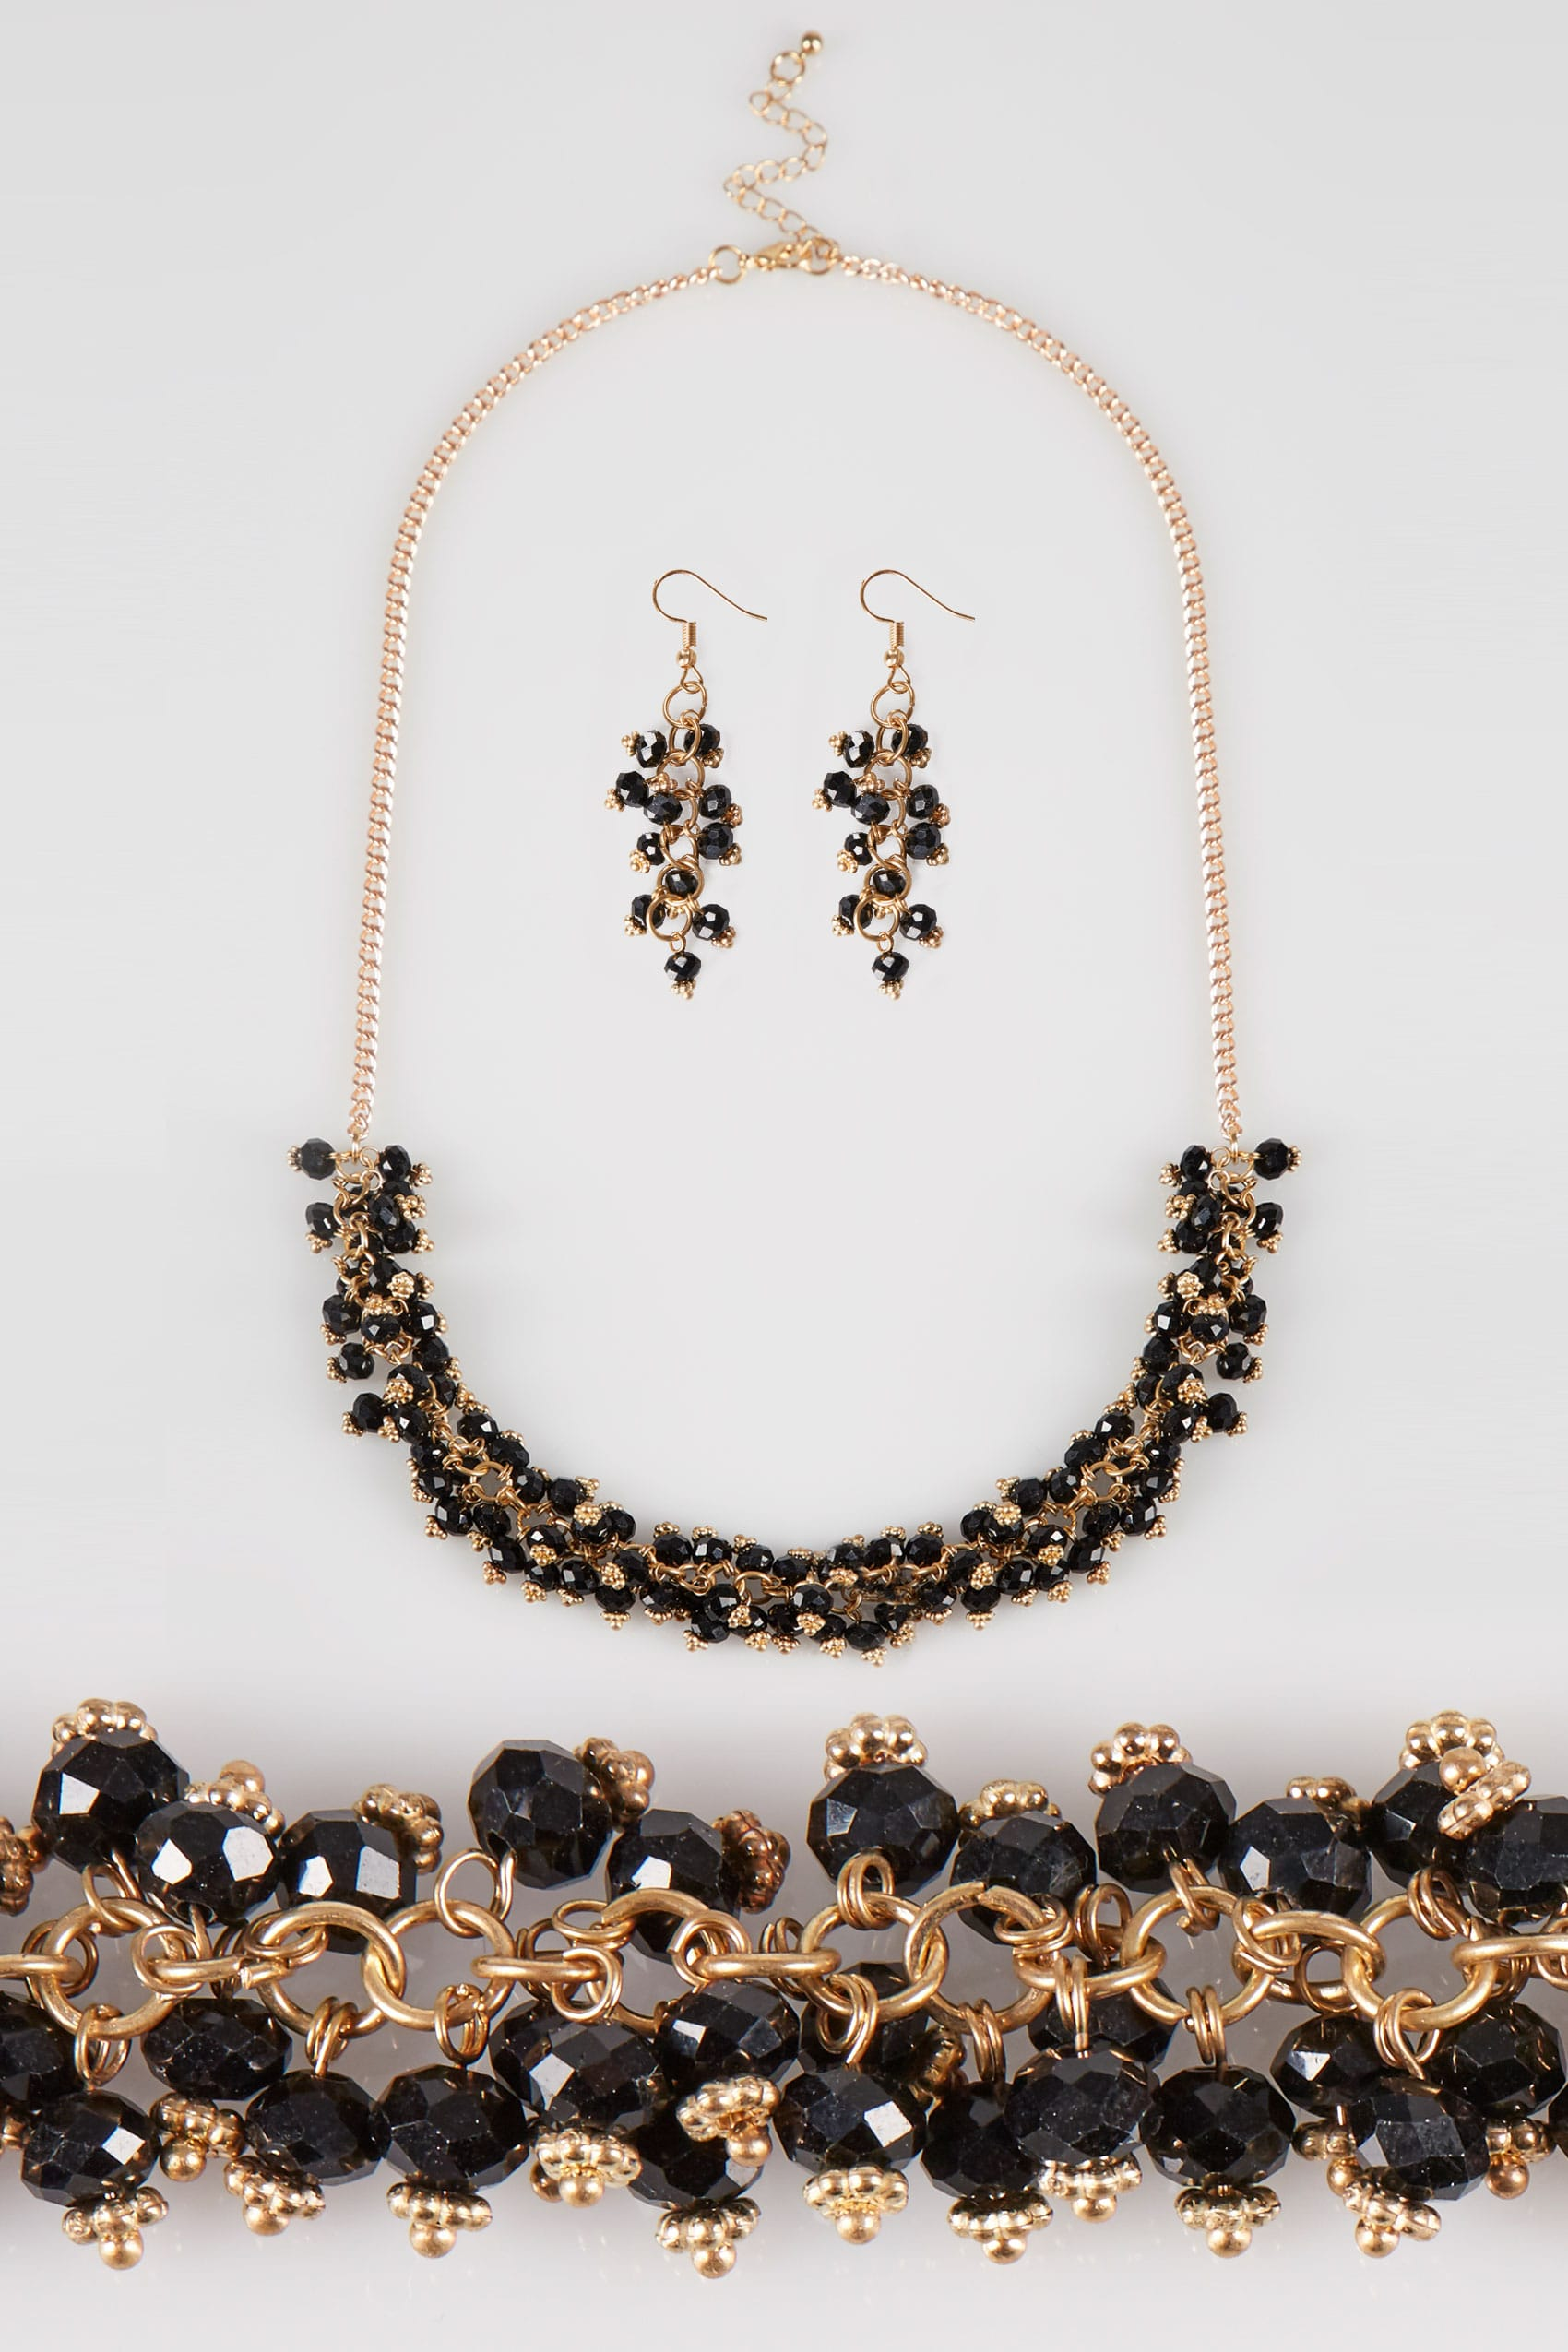 Gold Amp Black Beaded Necklace Amp Earrings Set